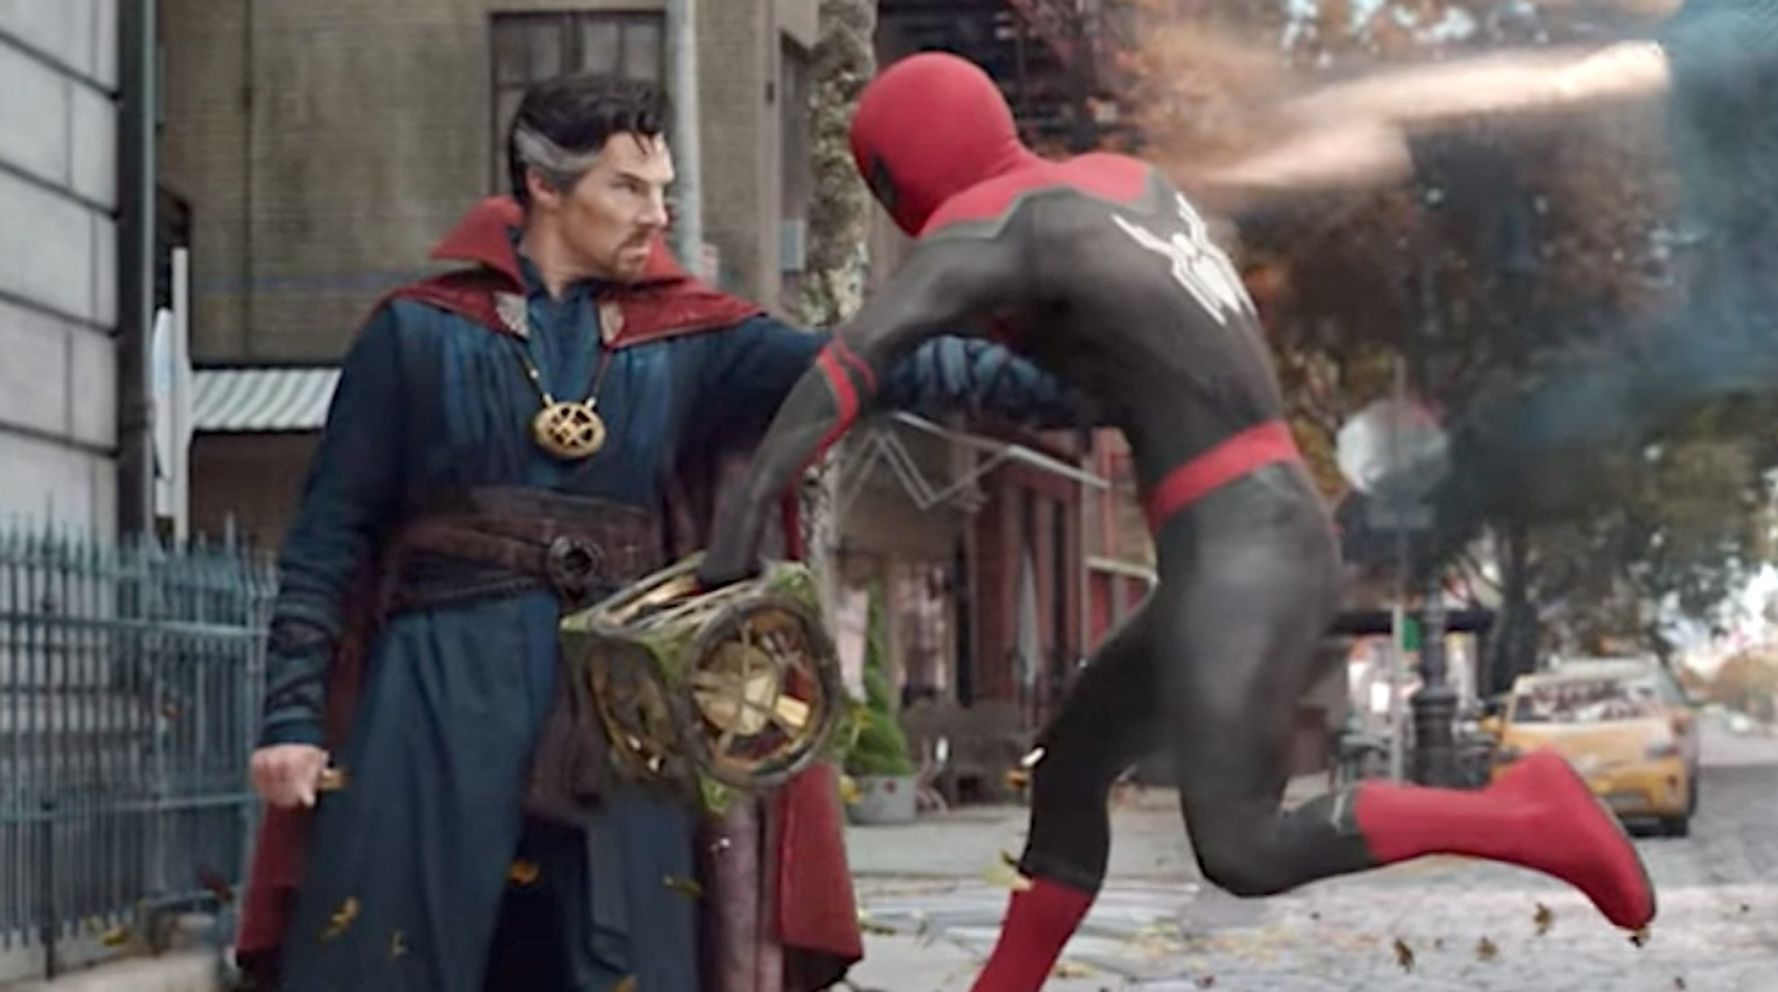 Unusual New Spider-Man Trailer Drops And, Yes, Marvel Is Officially Going There